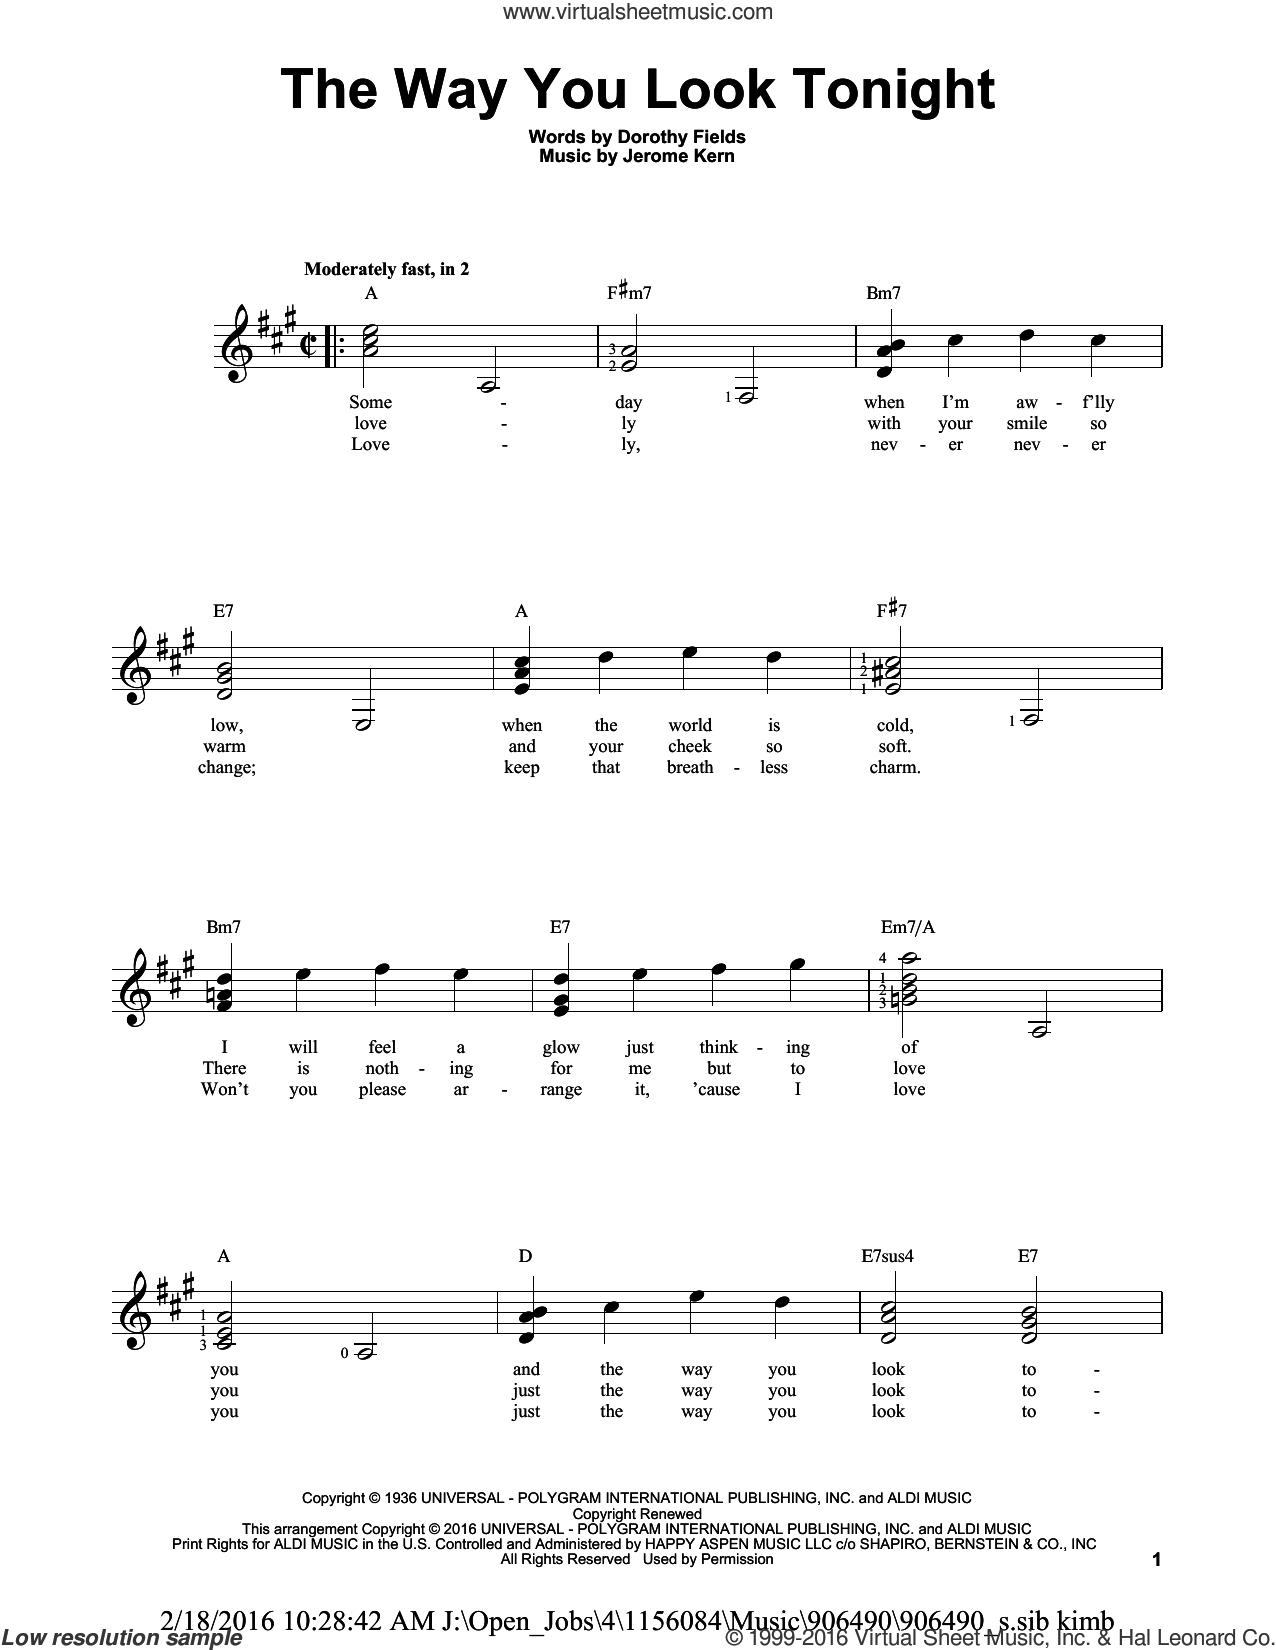 The Way You Look Tonight Guitar Chords